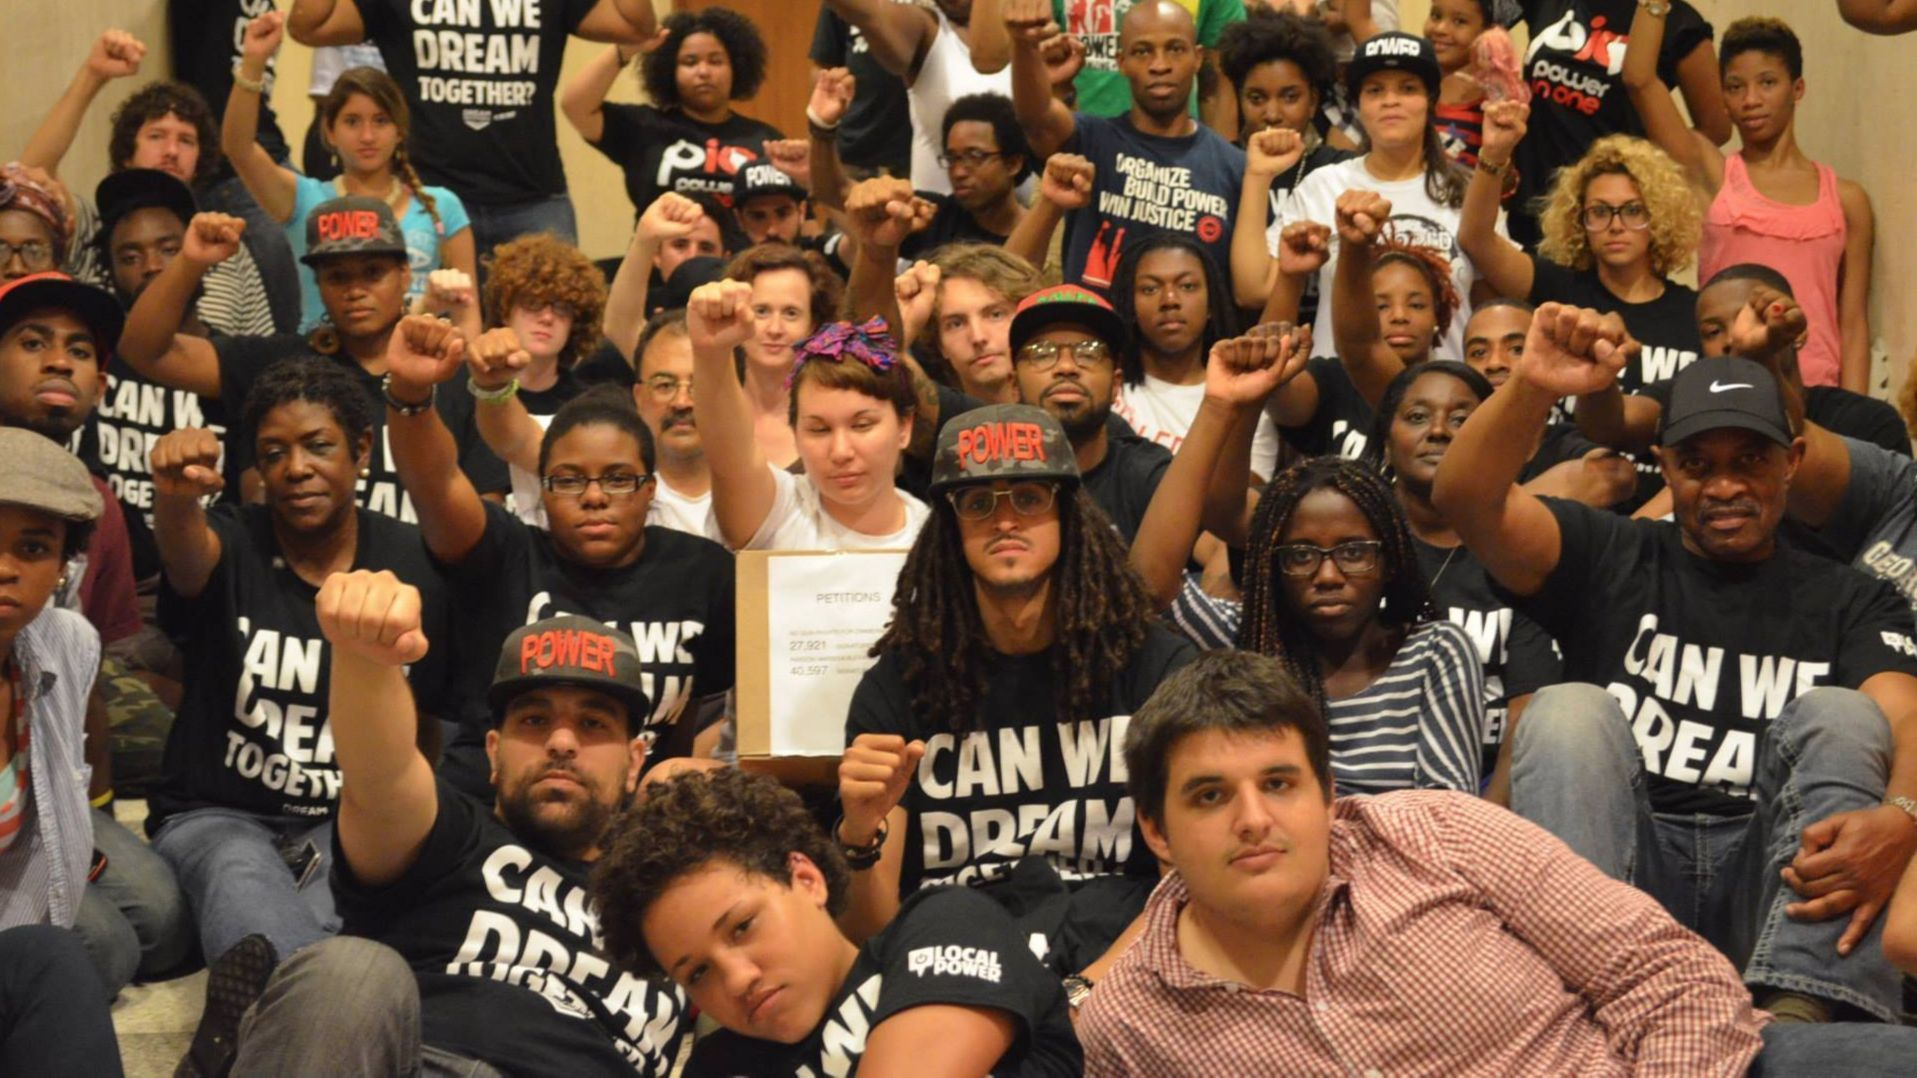 Curtis Hierro (front corner in the red and white shirt) at a sit-in outside the governor's office in Tallahassee on Aug. 13, 2013. After George Zimmerman was acquitted, protesters occupied the hallway for 31 days, demanding a repeal of Florida's Stand Your Ground law.